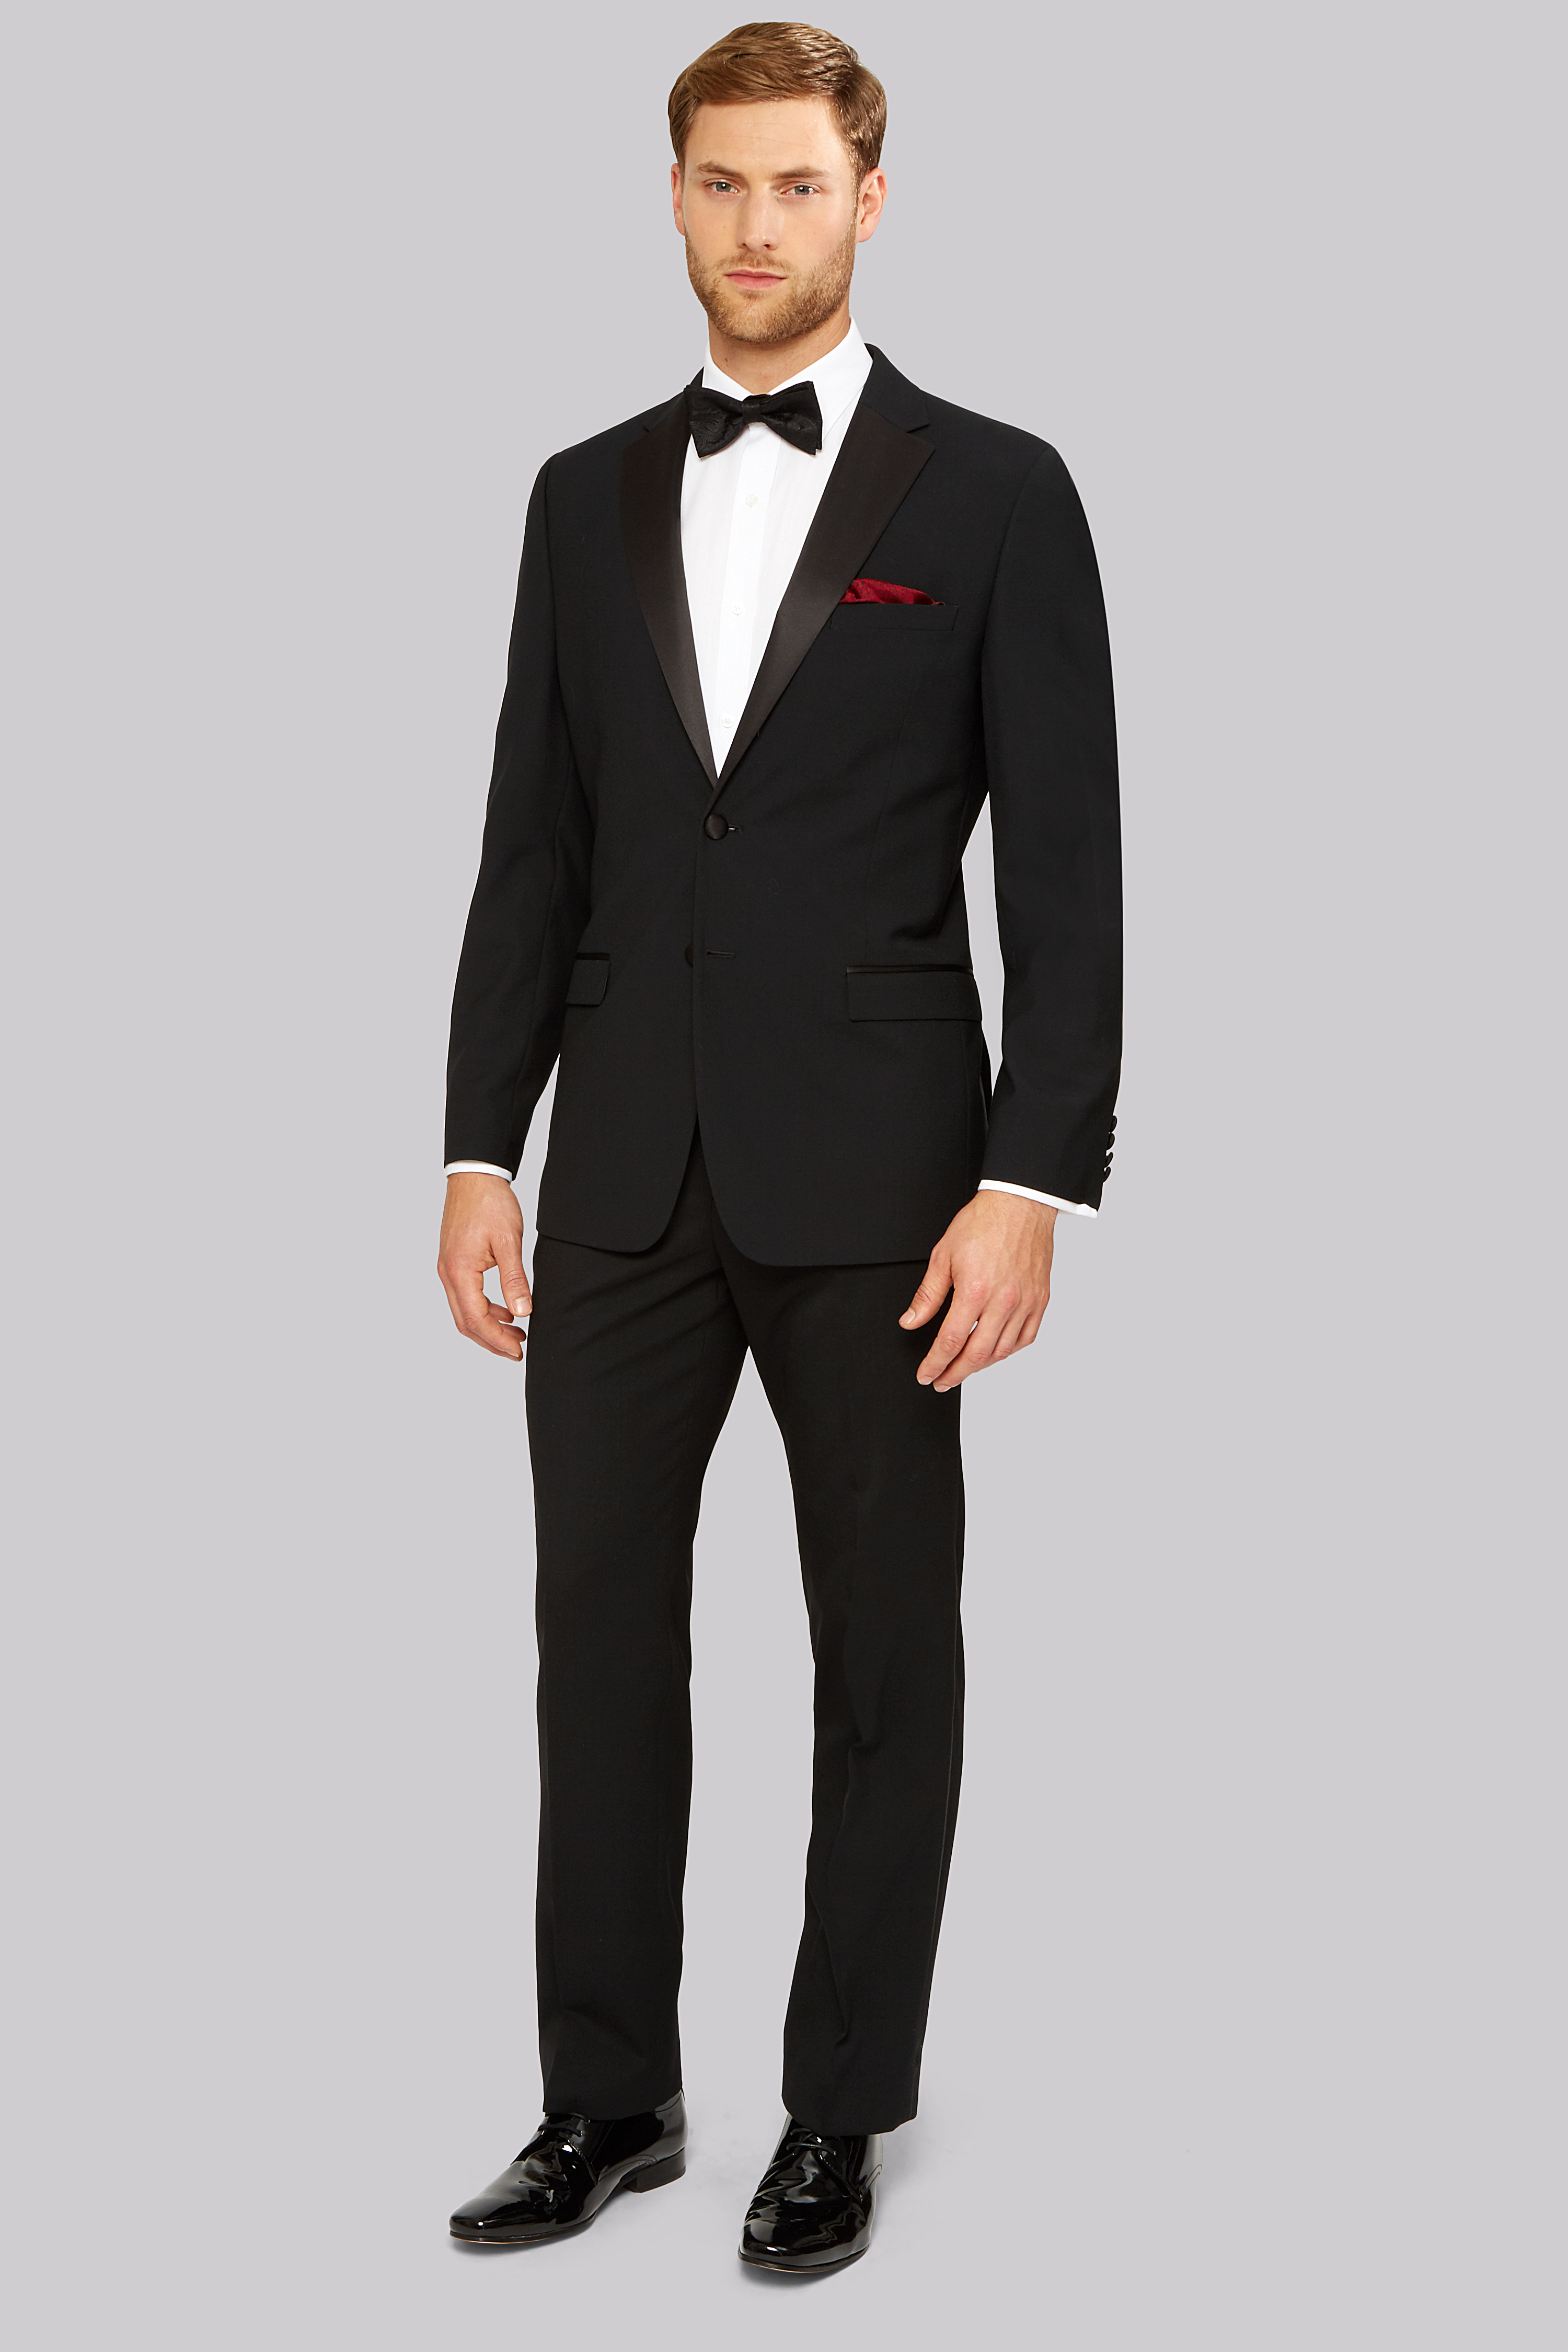 Men's dinner jackets: jwl-network.ga is an online attire store offering best quality men?s dinner jacket, cream tuxedo jacket mens, Dinner suits, Zoot suits, Fashion suits etc. You will surely encounter some of the best men?s suits at the best range of price.